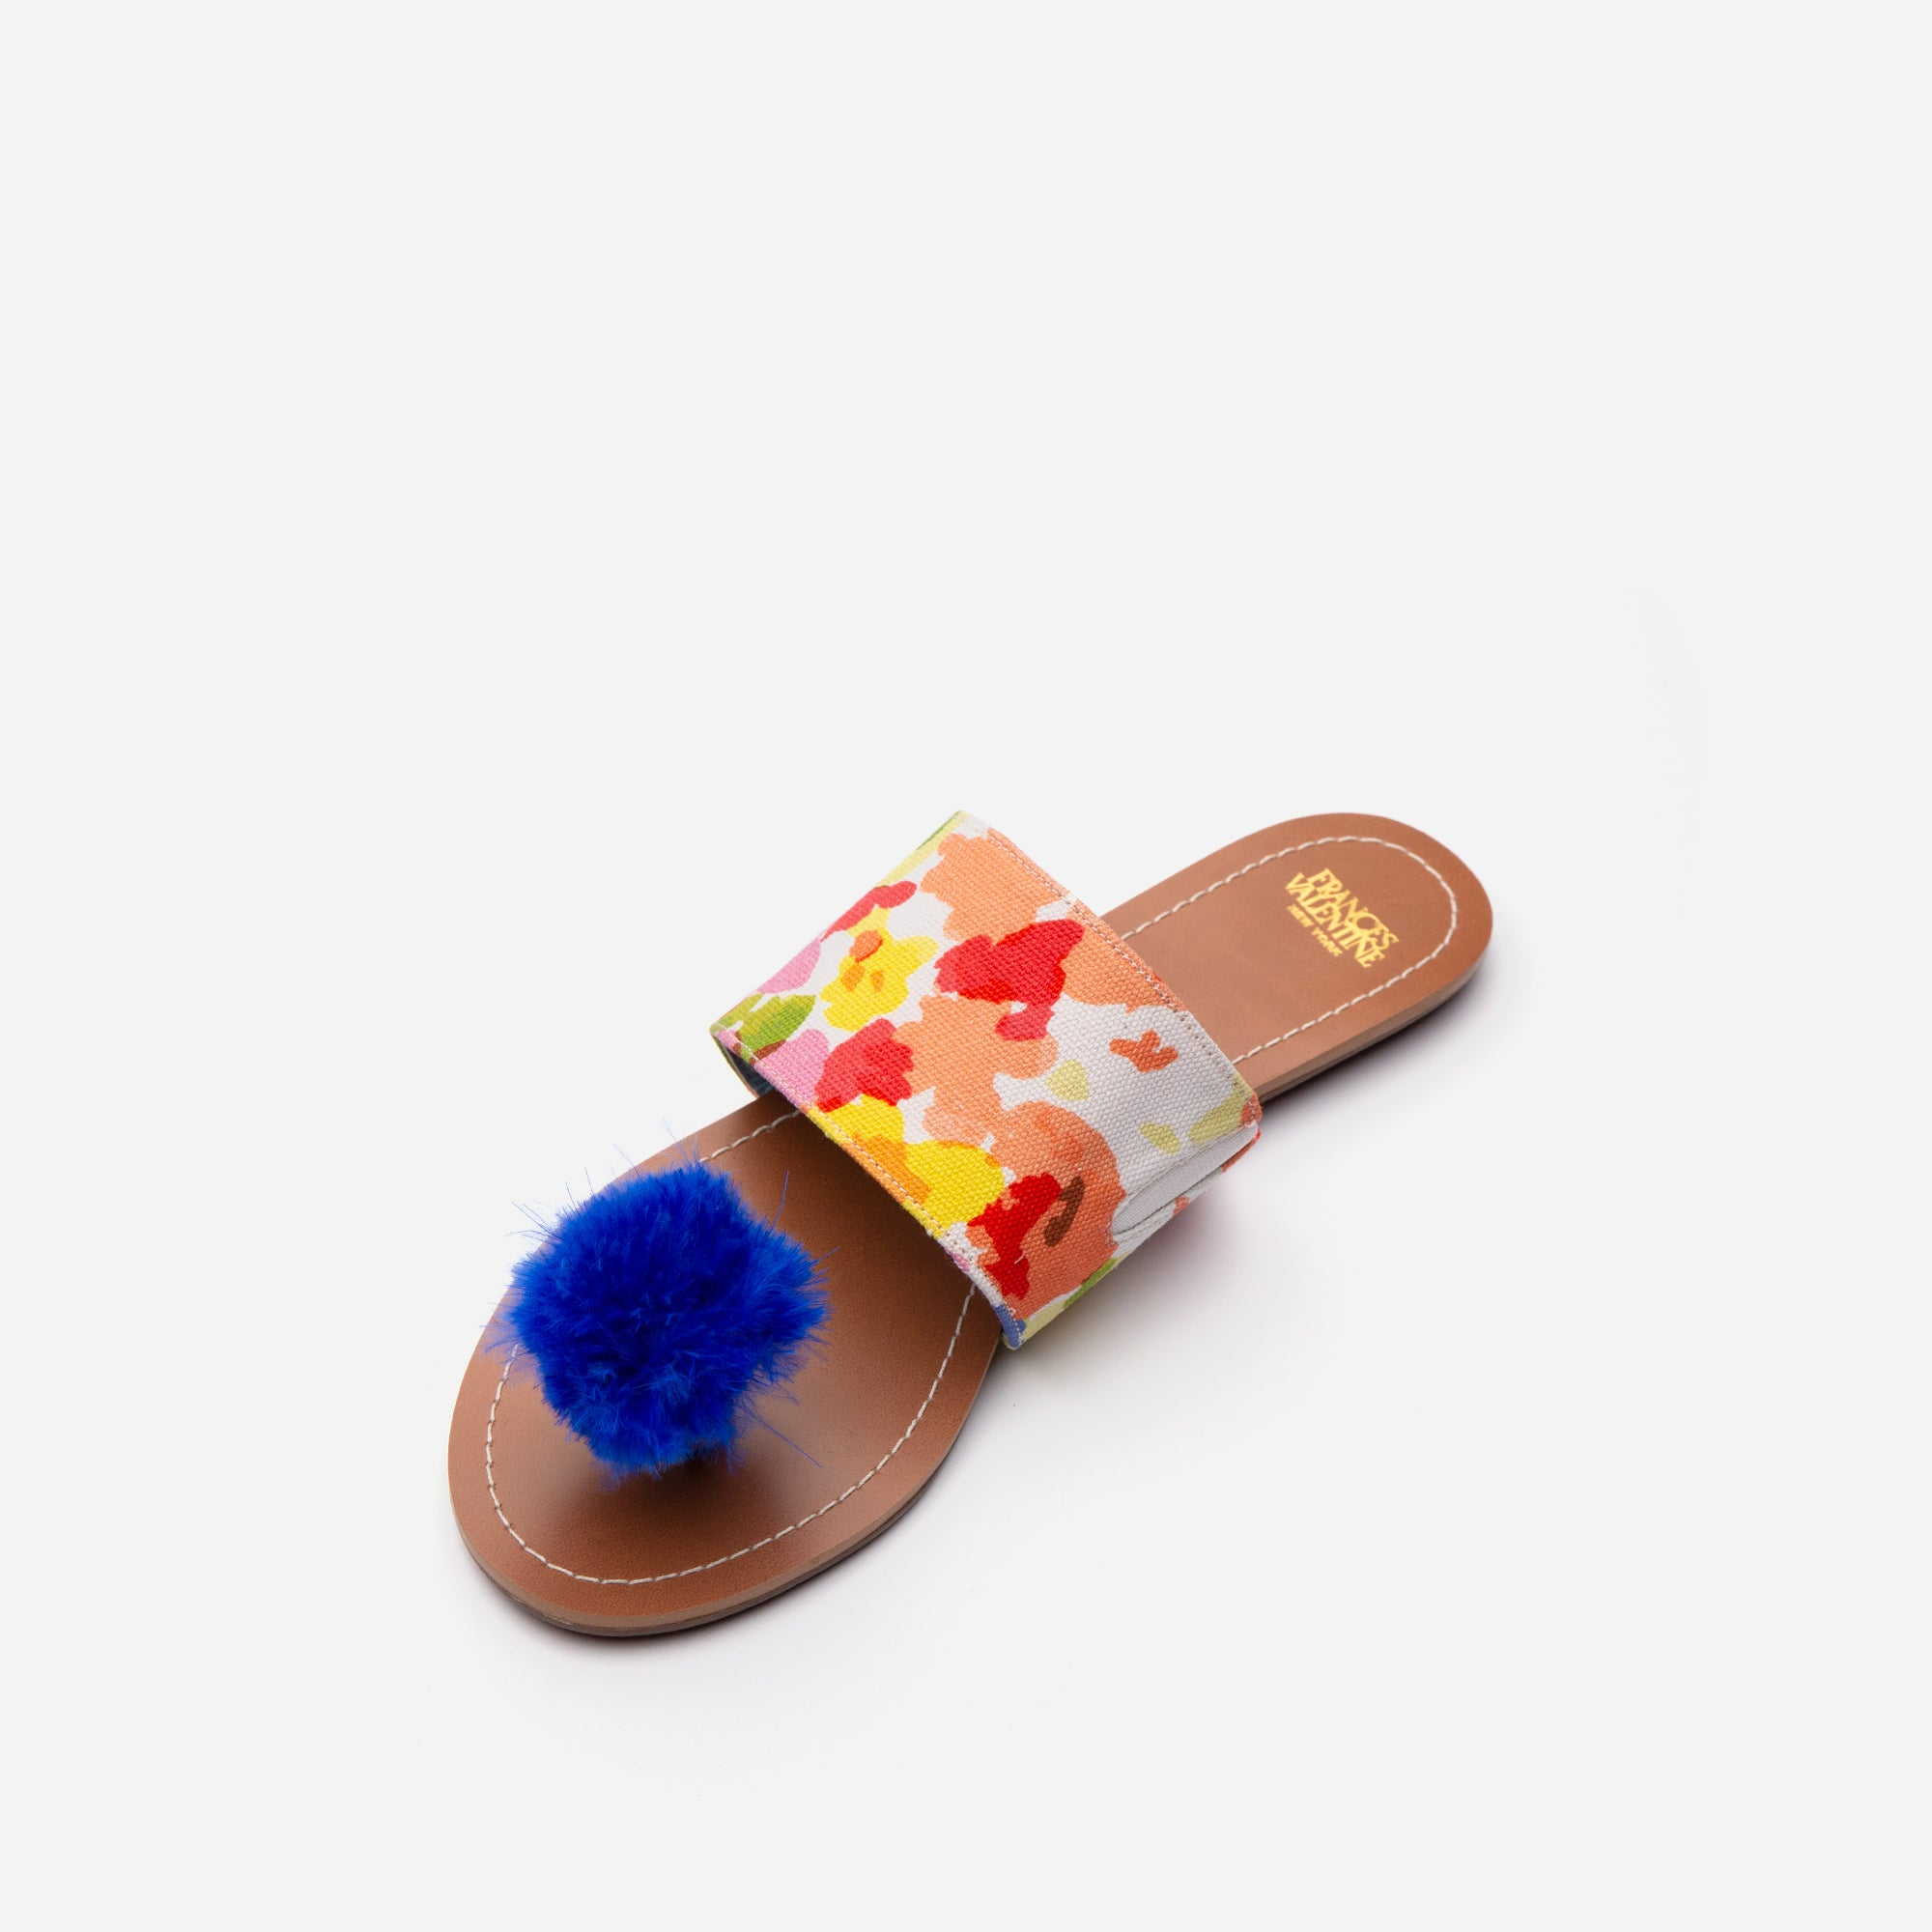 Clementine Pom Pom Sandals Floral